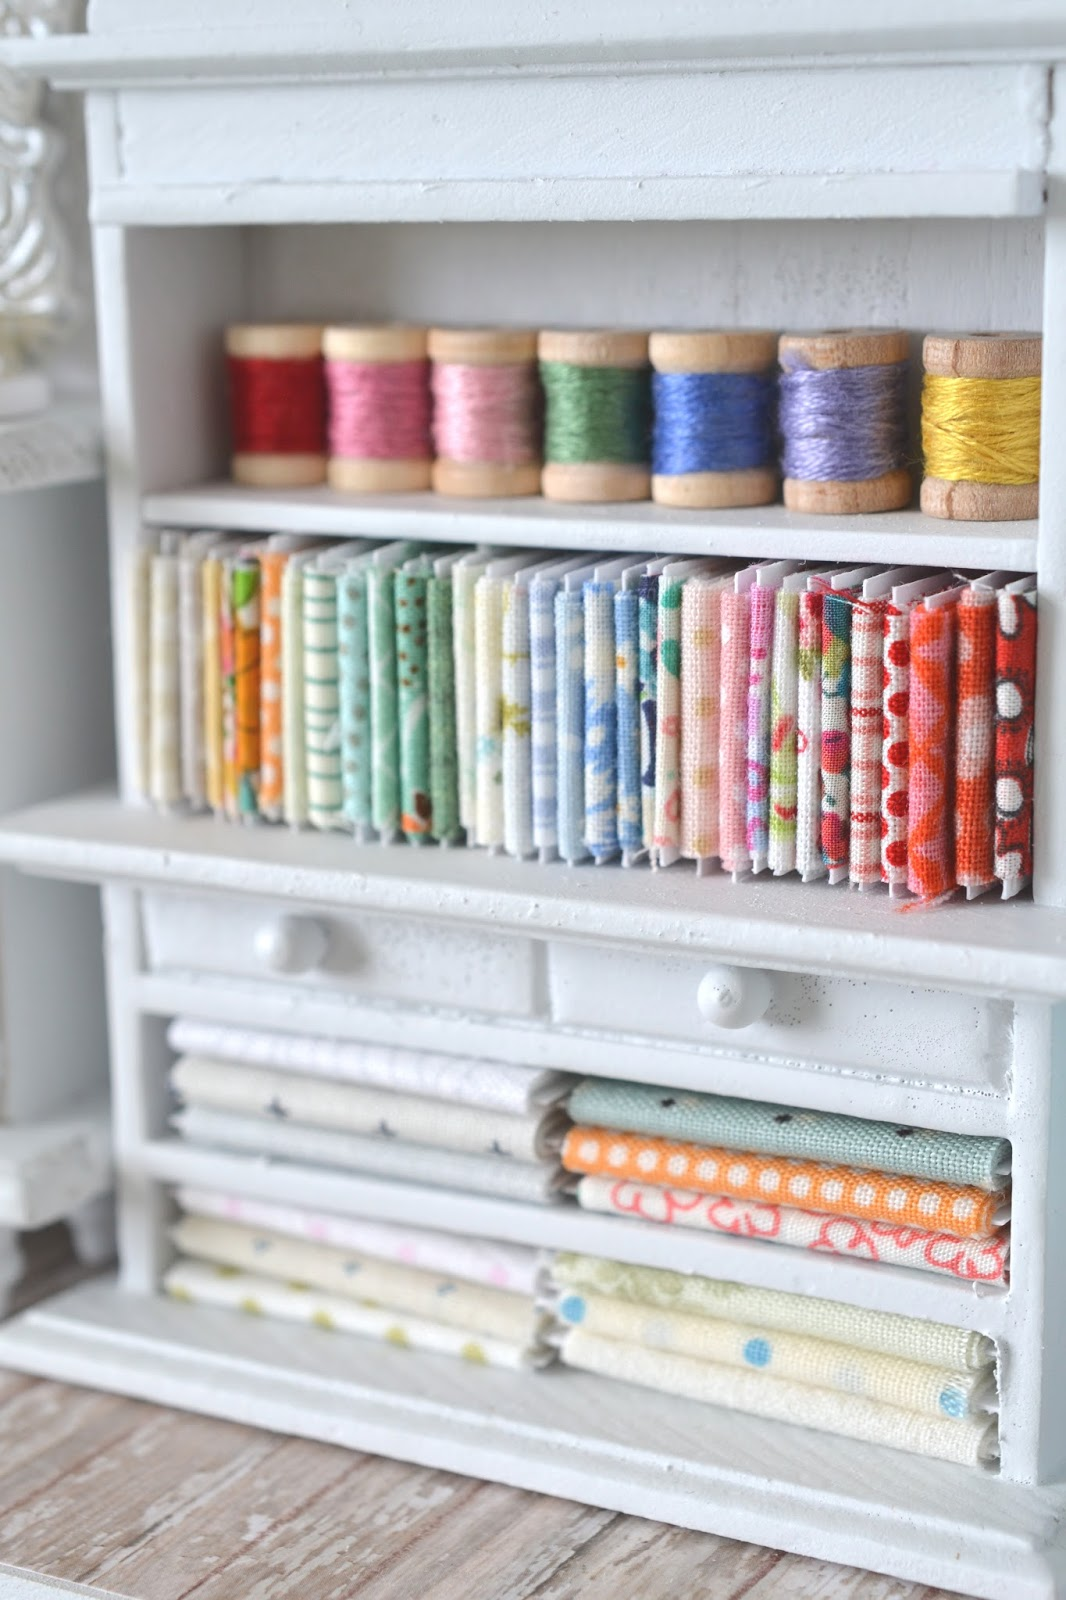 Gentil Big Reveal Of Small Sewing Room ~Part 3